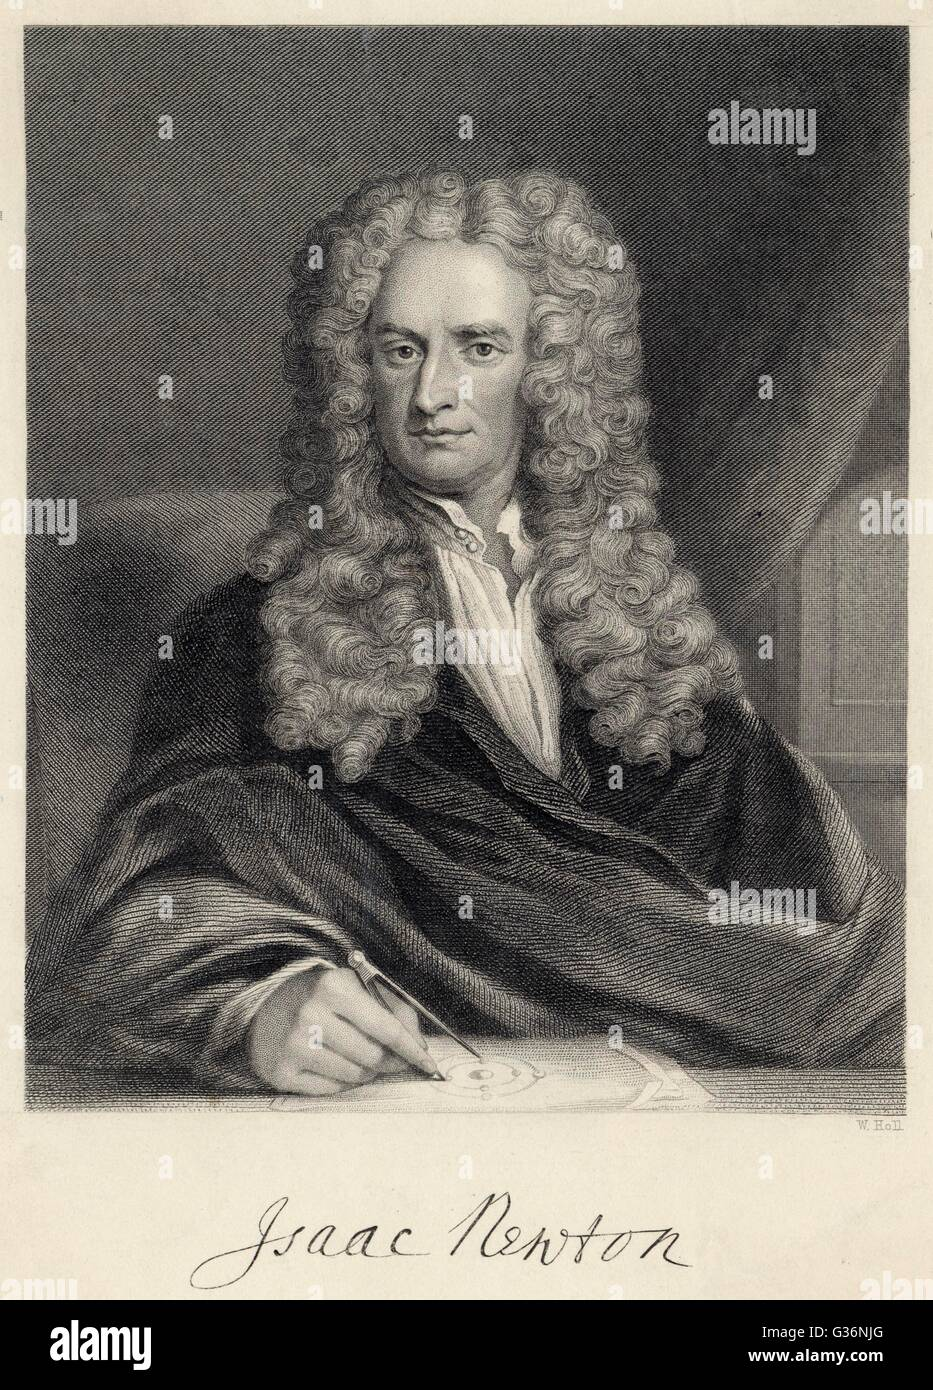 Sir Isaac Newton (1642-1727), English mathematician, physicist, astronomer,  natural philosopher, alchemist, theologian and occultist. Date: 1680s